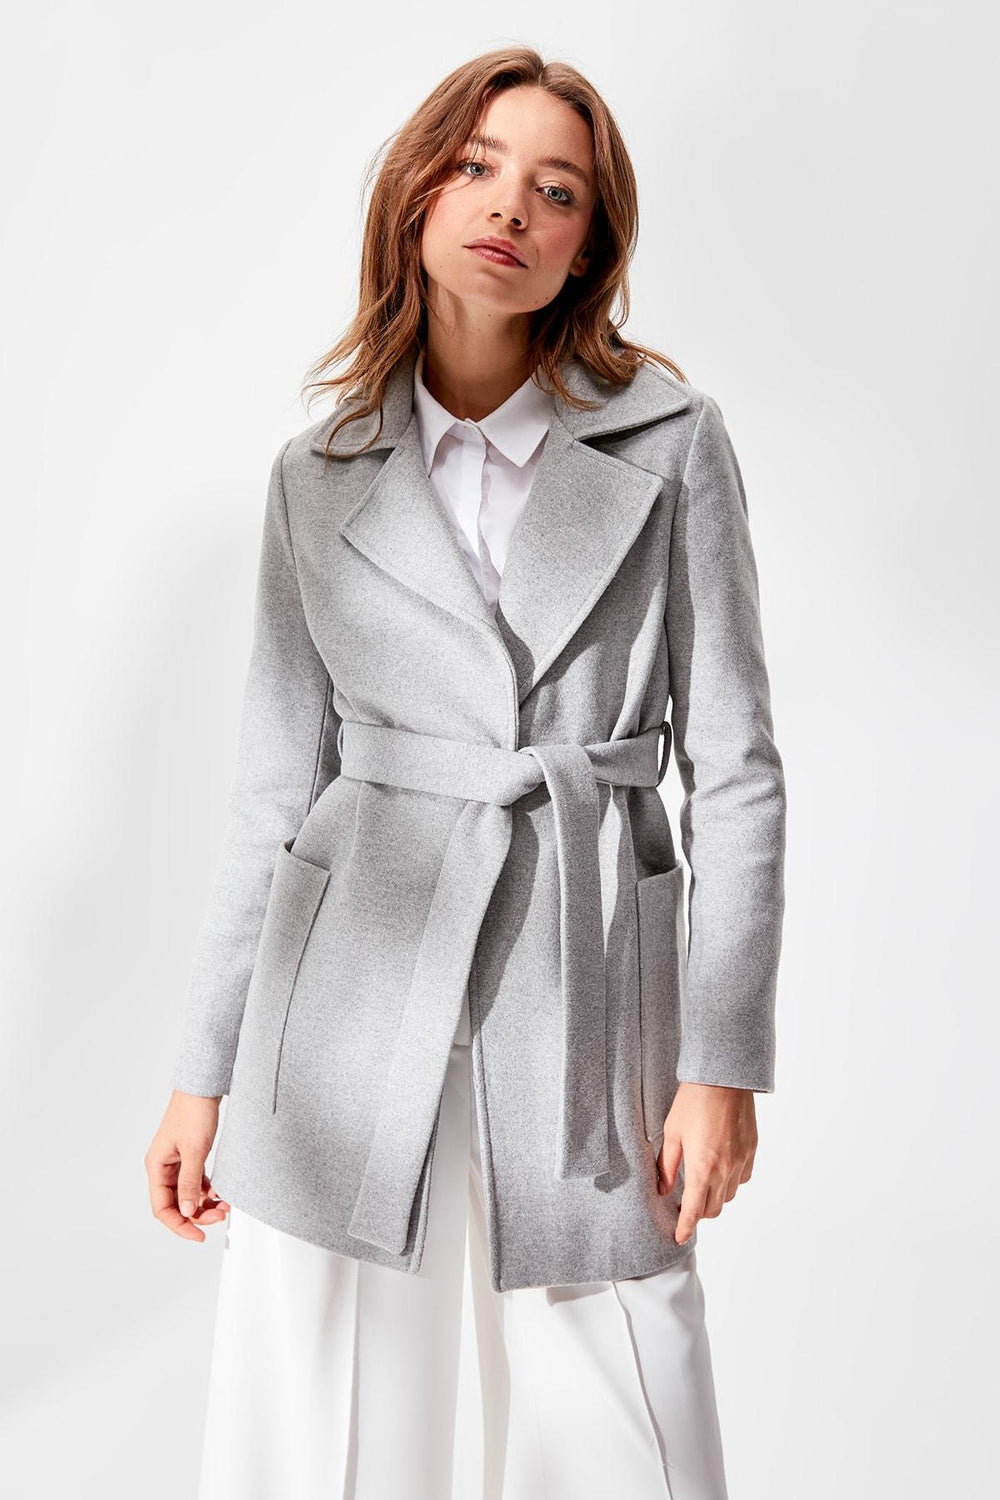 Gray Woolen Arched Stamp Coat - Top Maxy